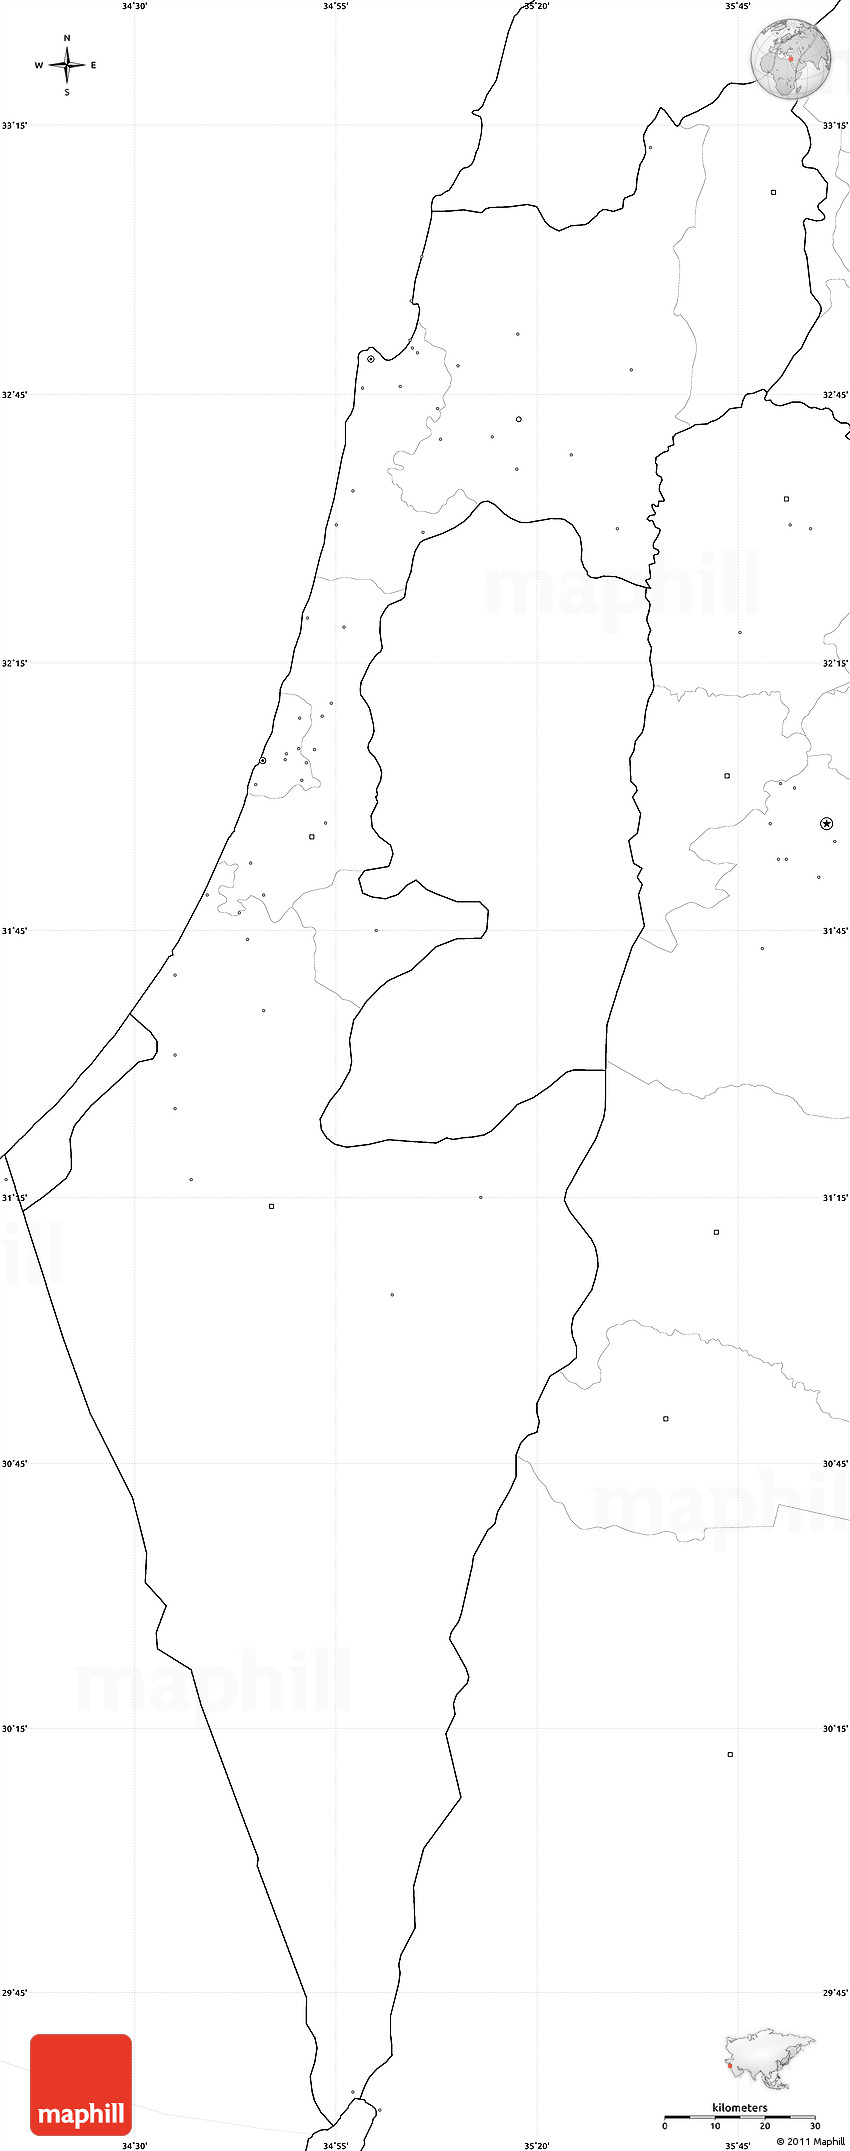 Picture of: Blank Simple Map Of Israel No Labels